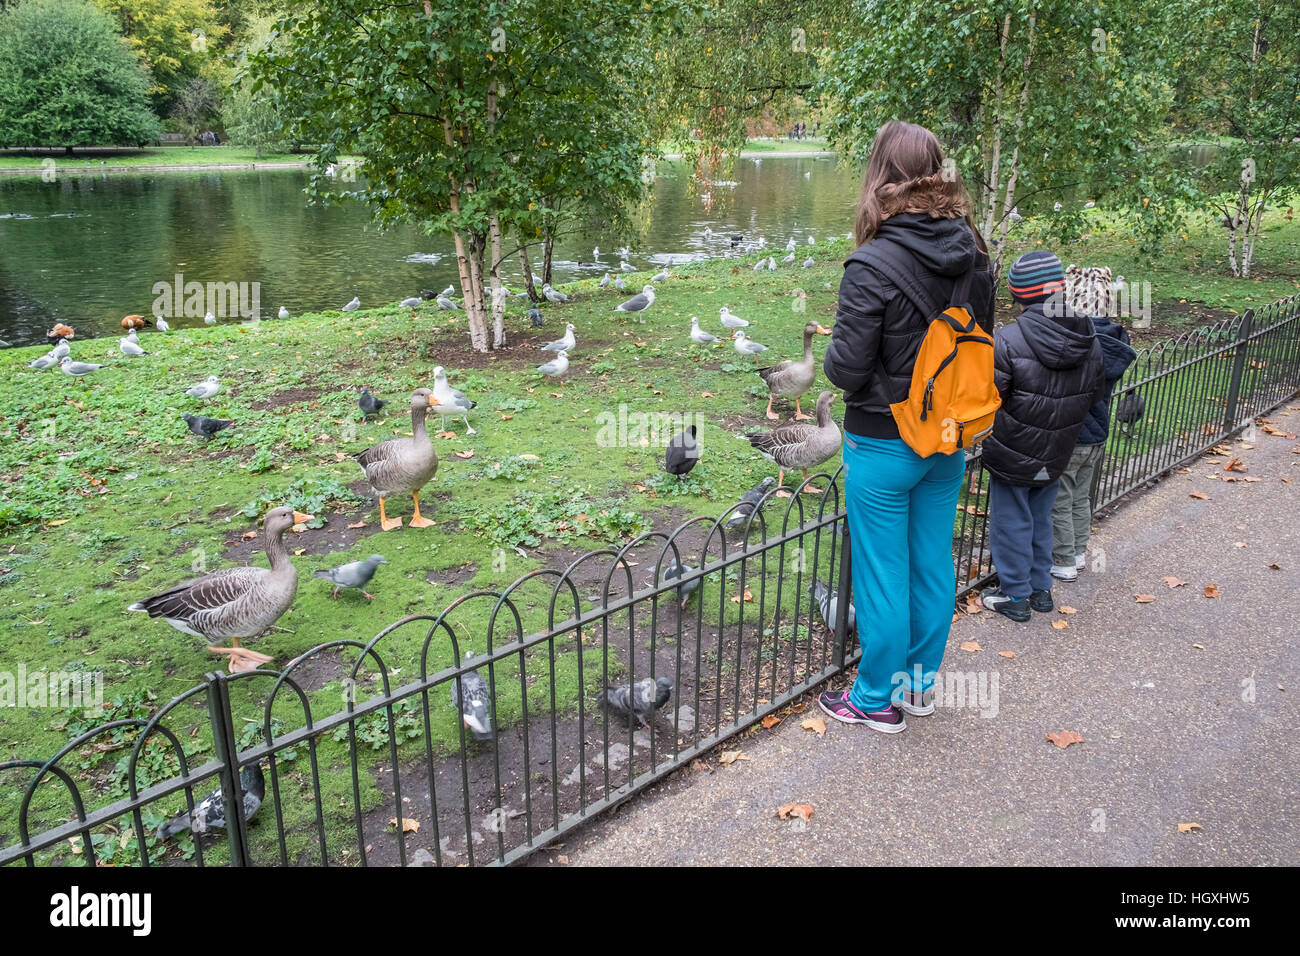 Woman and young children feeding birds in St James Park, London, UK - Stock Image